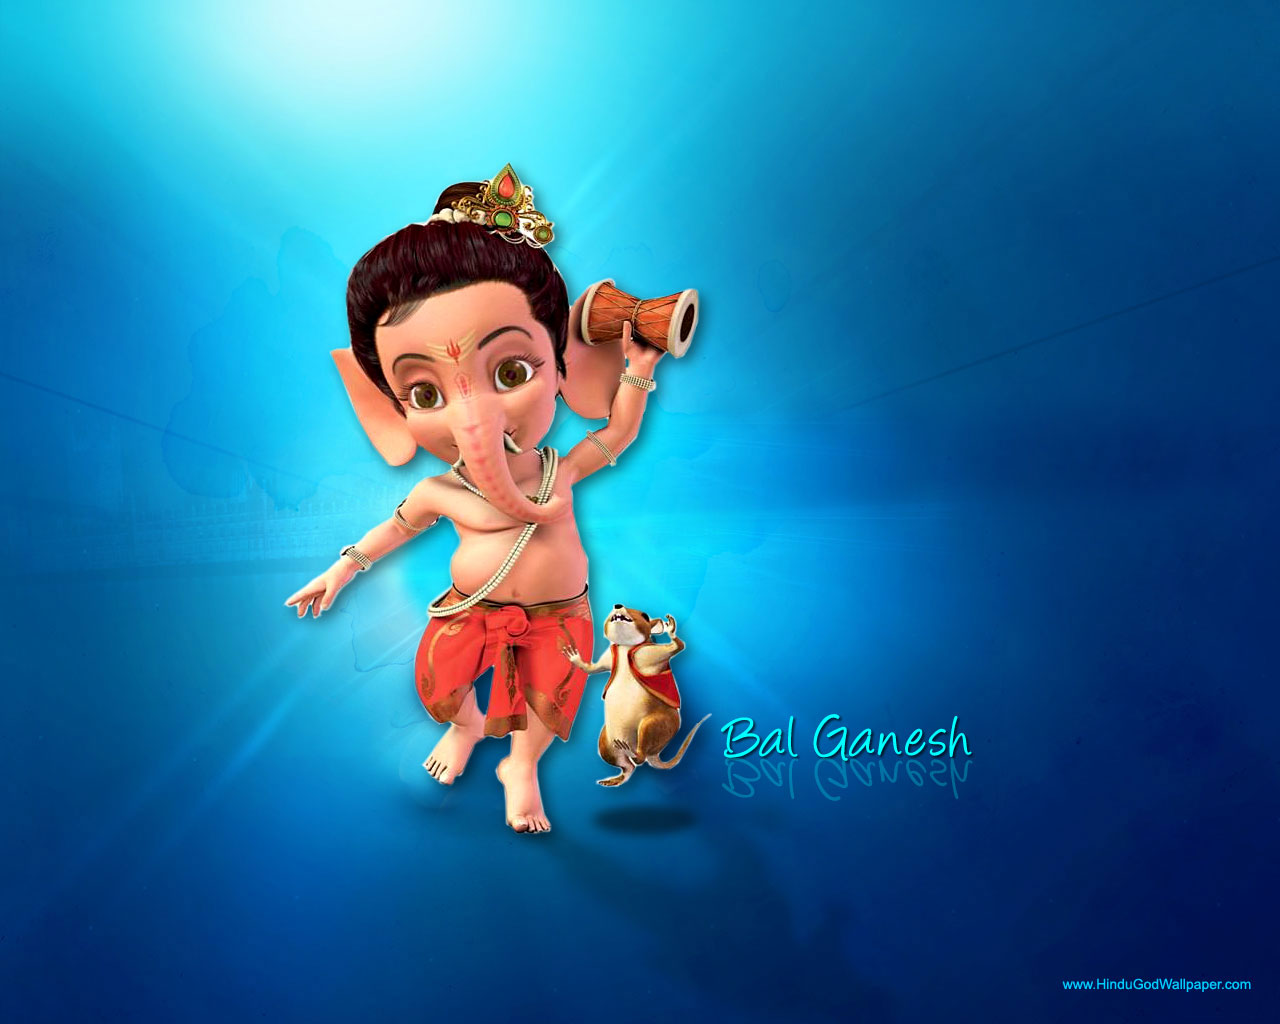 Bal Ganesha HD Wallpapers Download